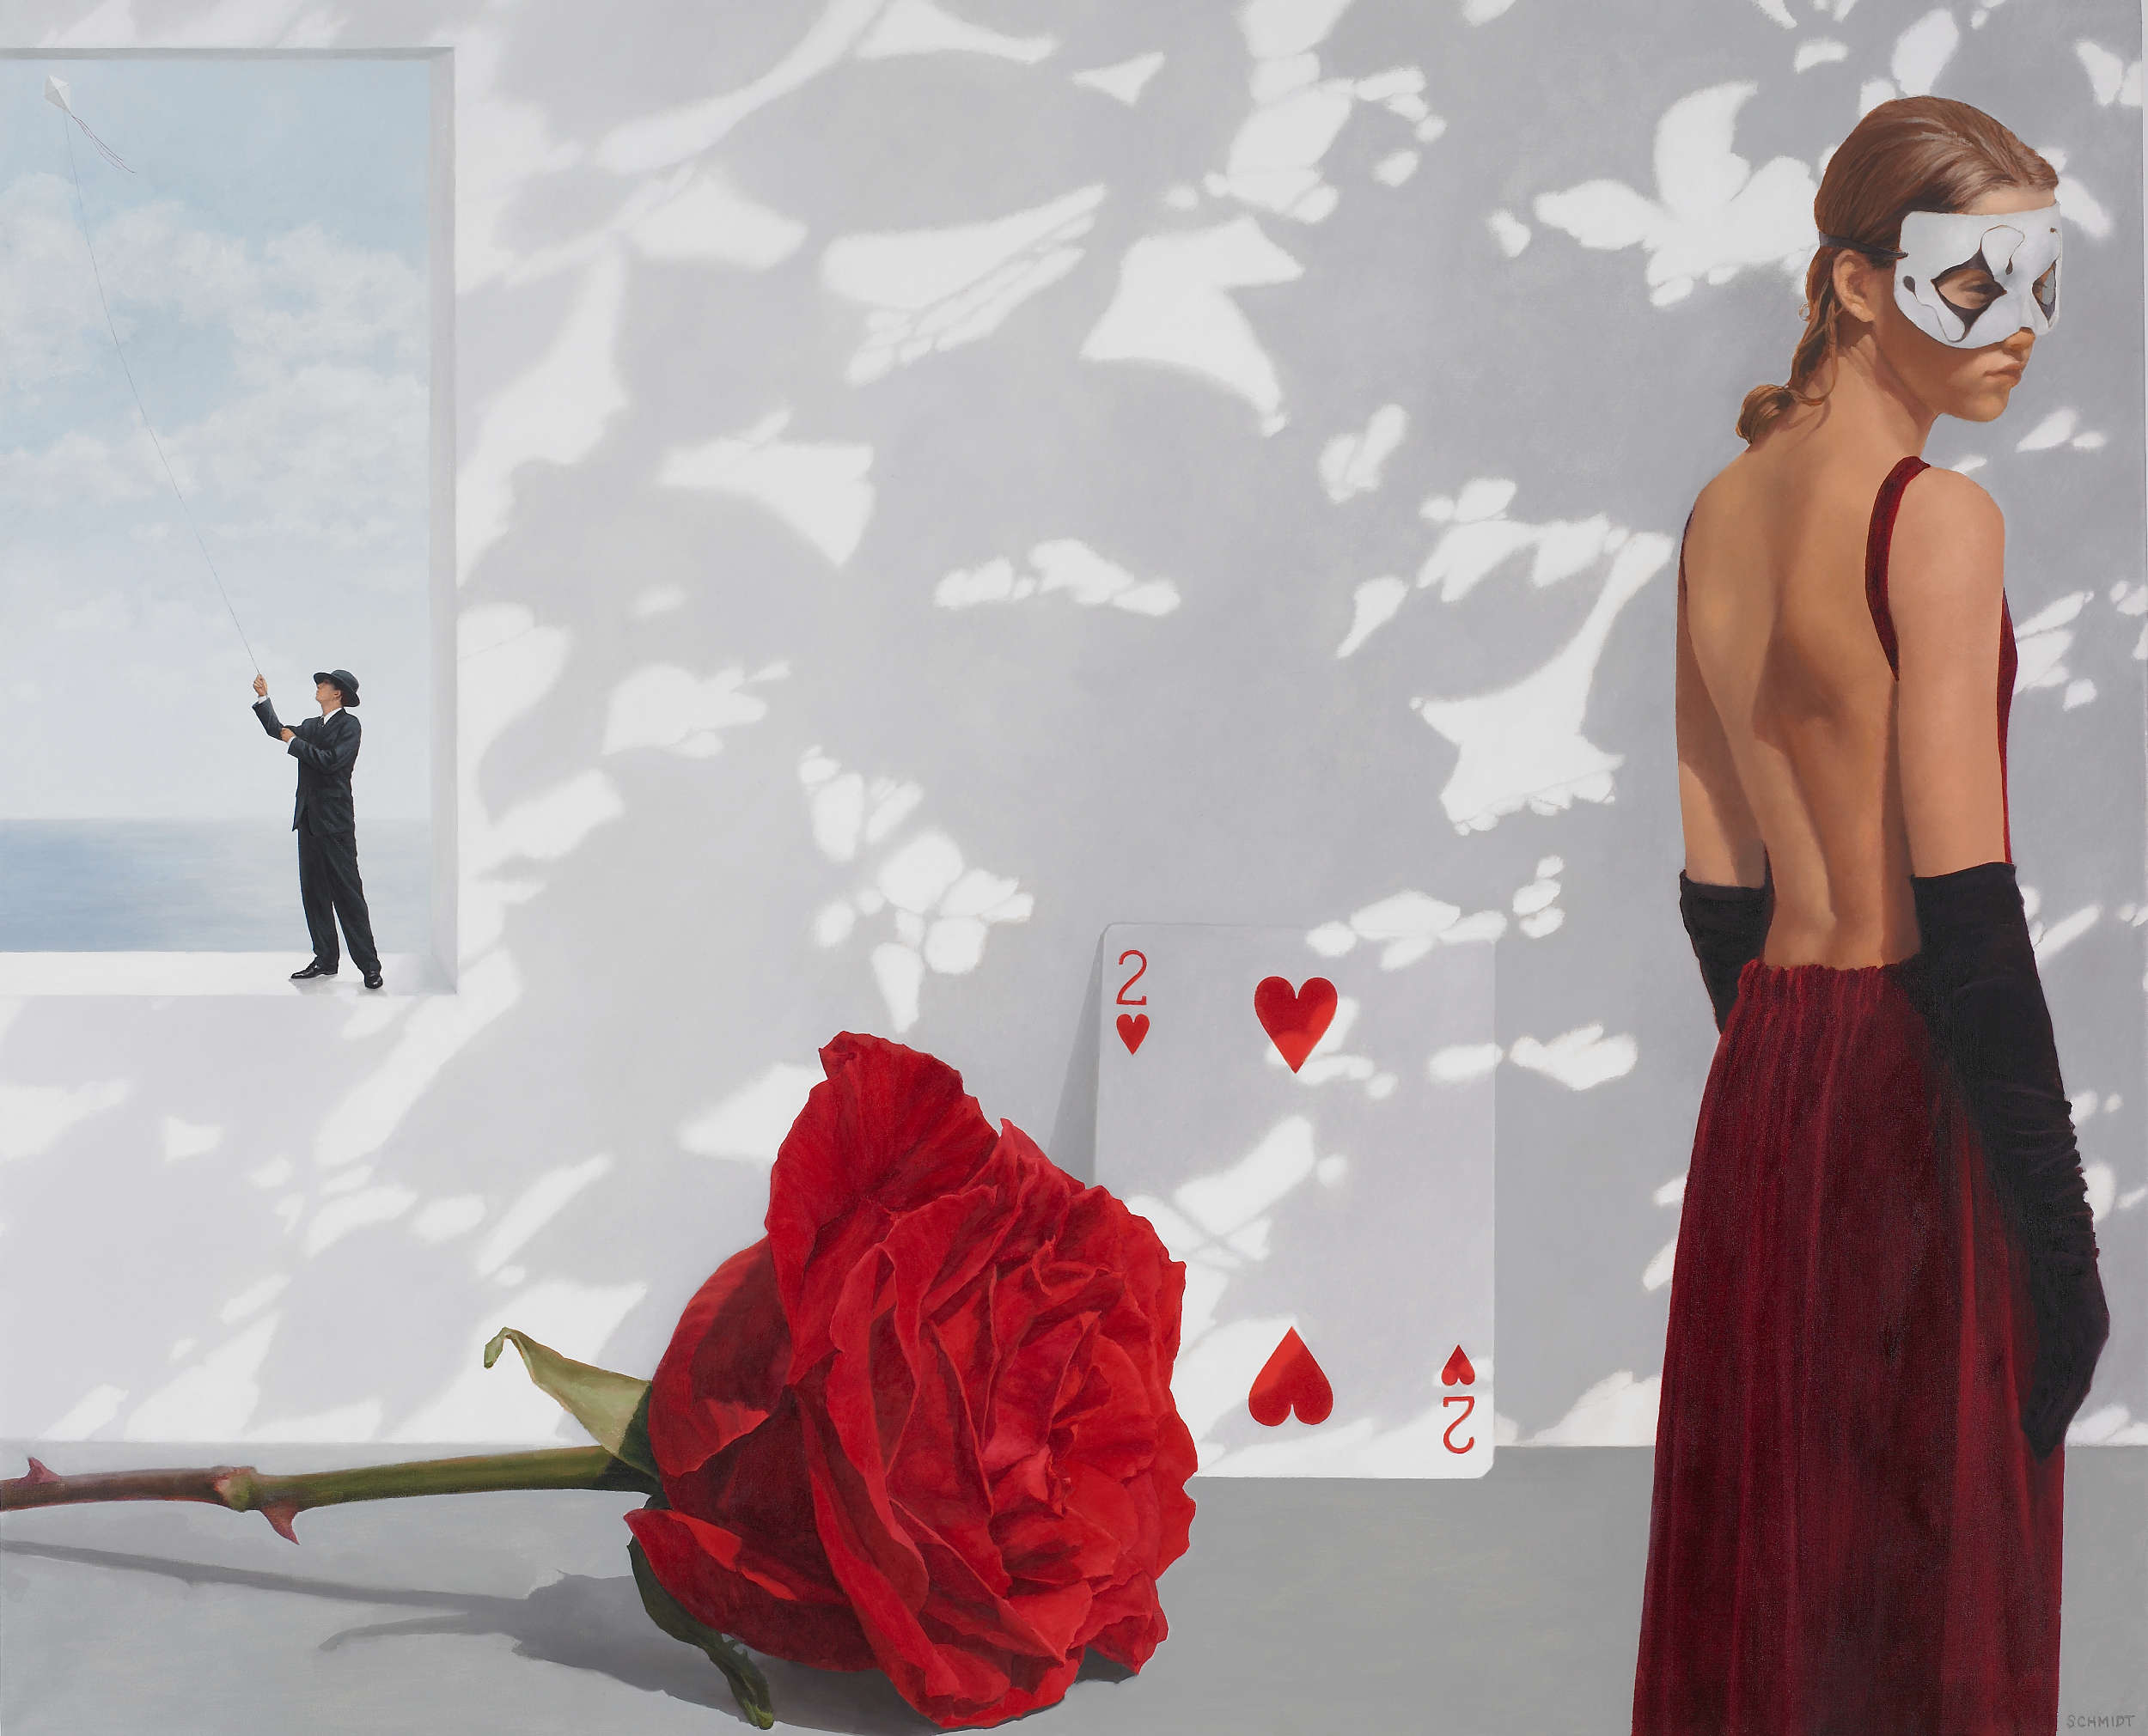 female figure wearing theatrical mask, black long gloves, white wall with shadows, horizontal red rose, diminutive male figure wearing  a  suit and fedora hat, flying a kite, card 2 of hearts